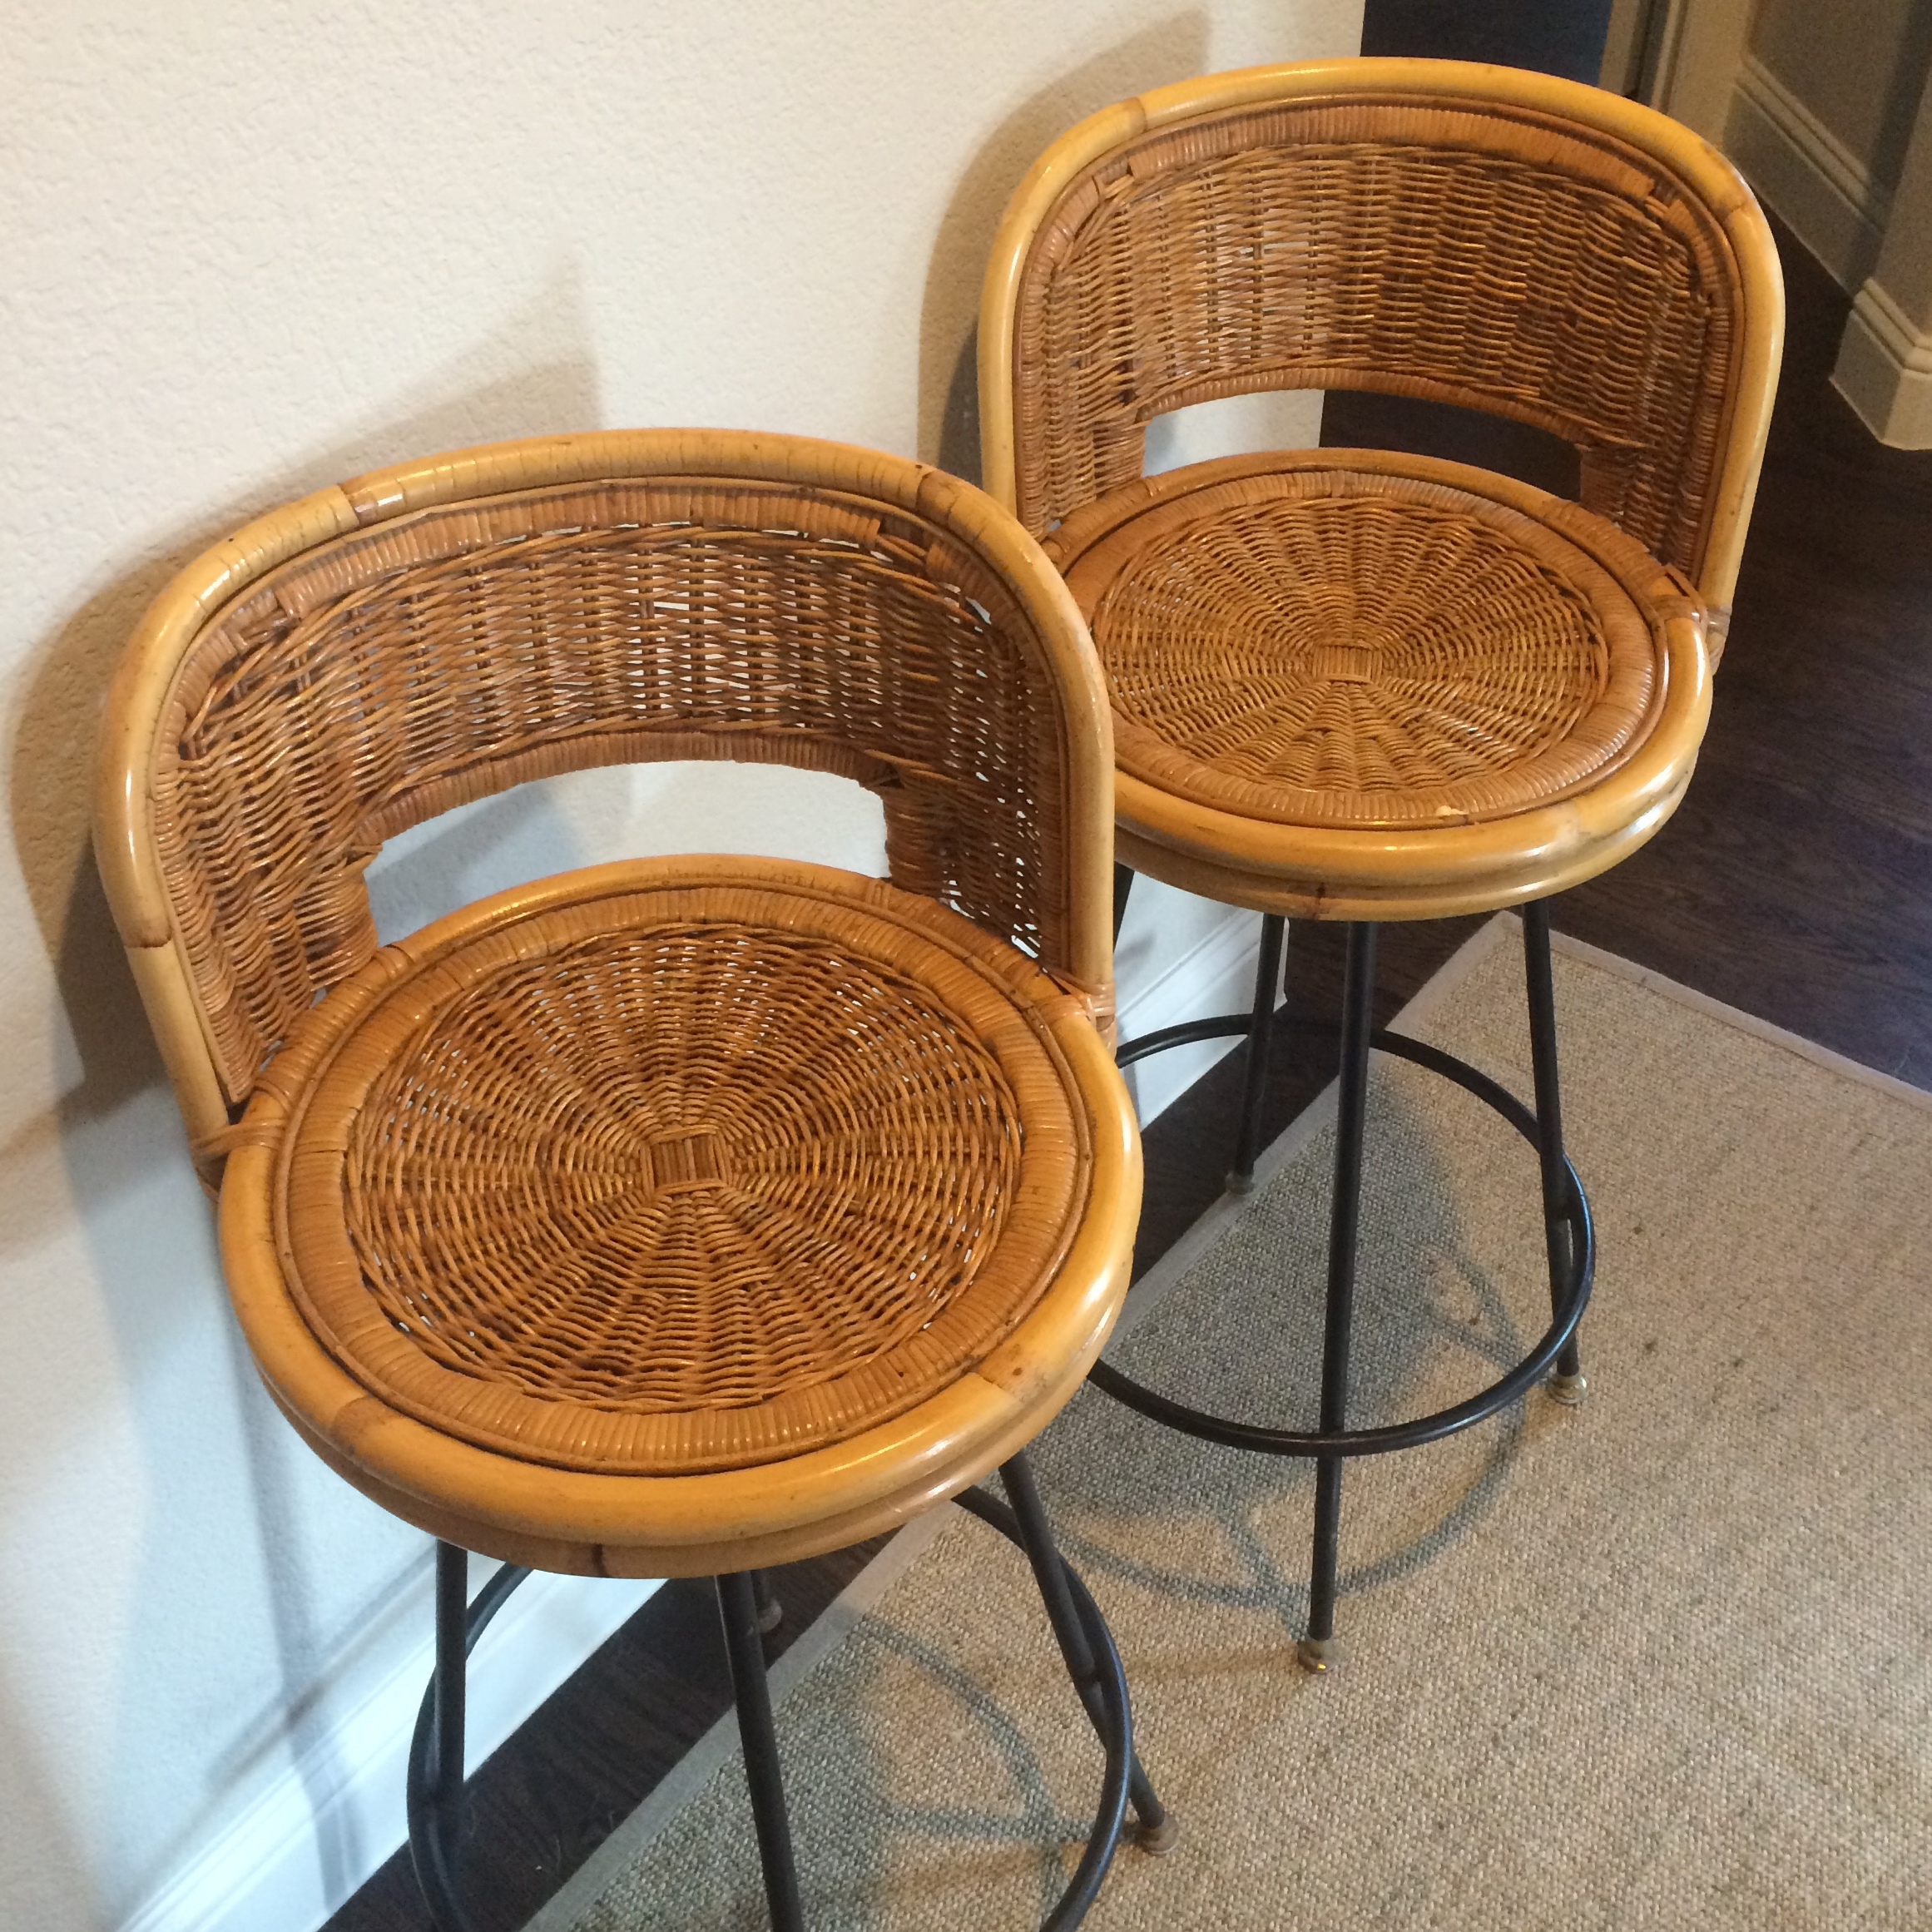 Vintage Seng of Chicago Wicker u0026 Iron Stools - A Pair For Sale In Dallas - & Vintage Seng of Chicago Wicker u0026 Iron Stools - A Pair | Chairish